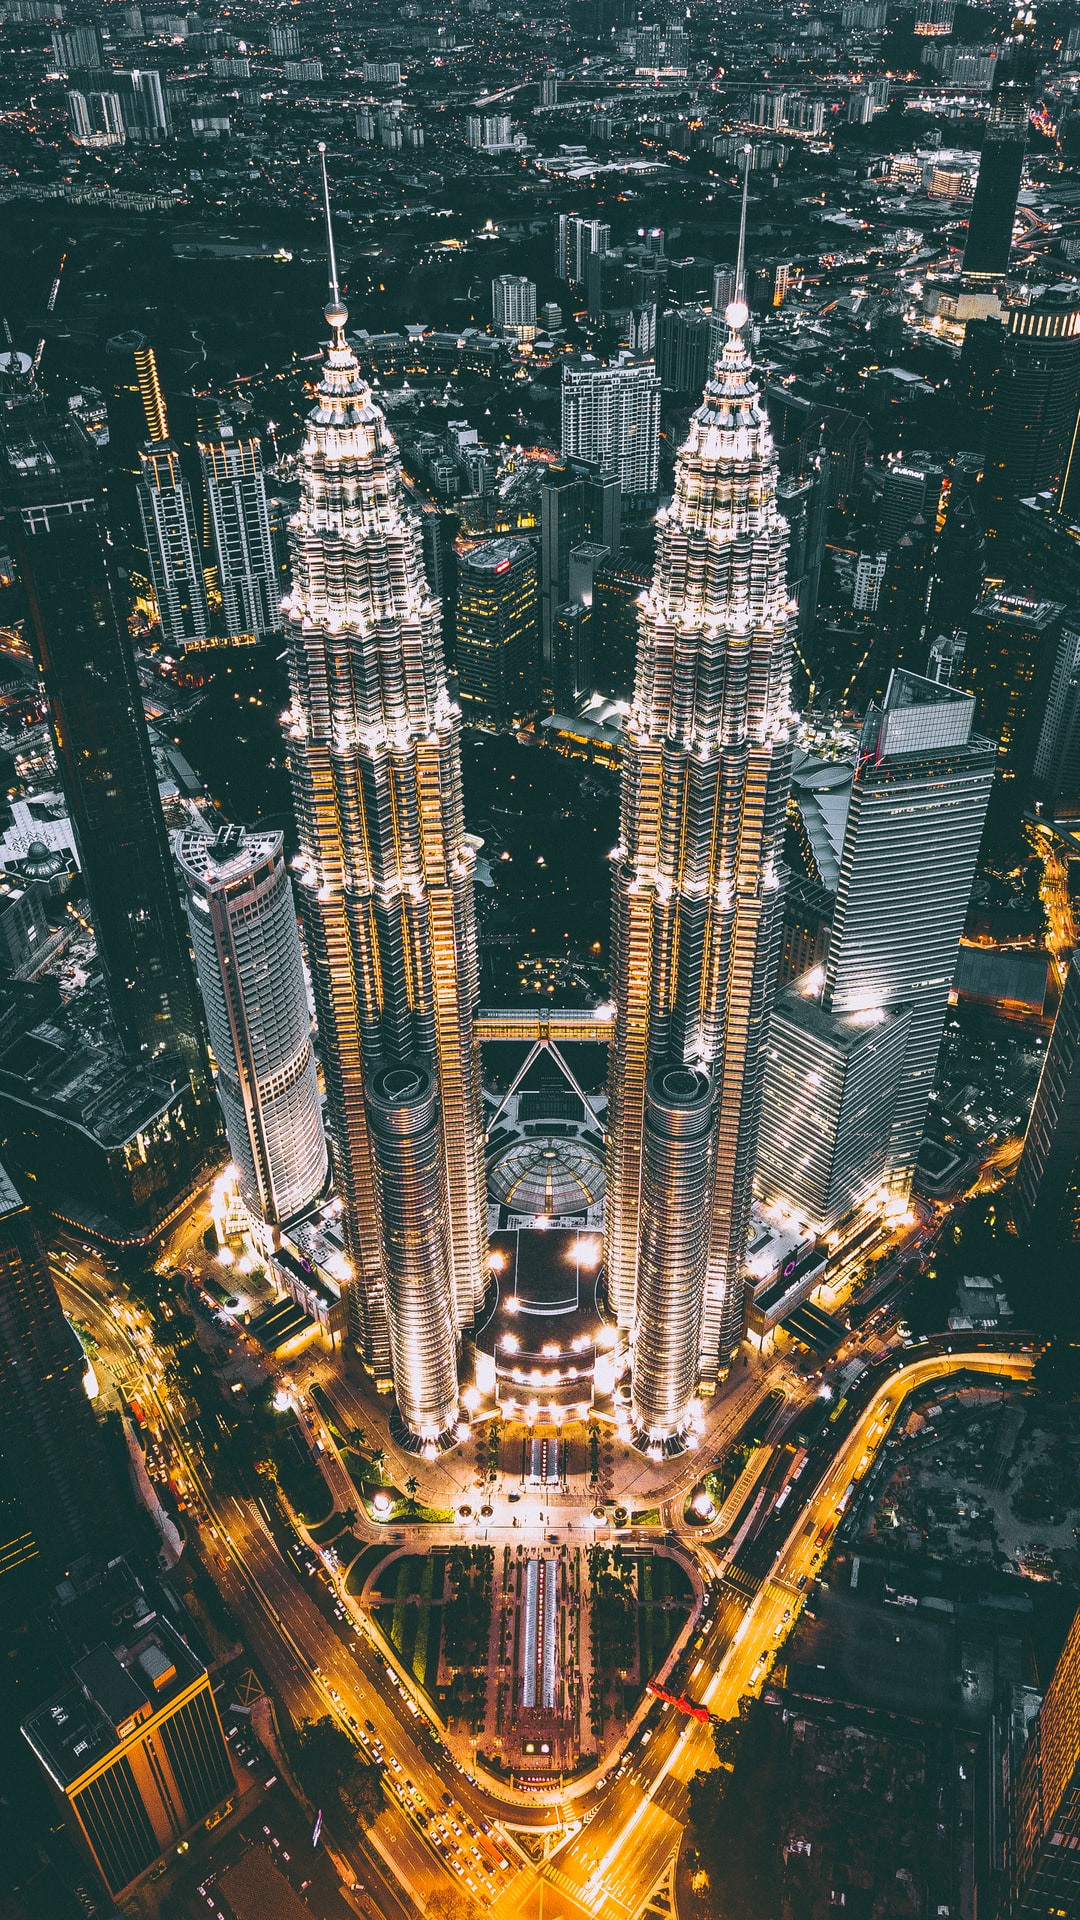 We were looking for some nice photos of KLCC Tower during sunset, but unfortunately there are a lot of clouds on that day. So we're doing a quick portrait shot of KLCC from DJI Mavic. It's on around 7:00PM.